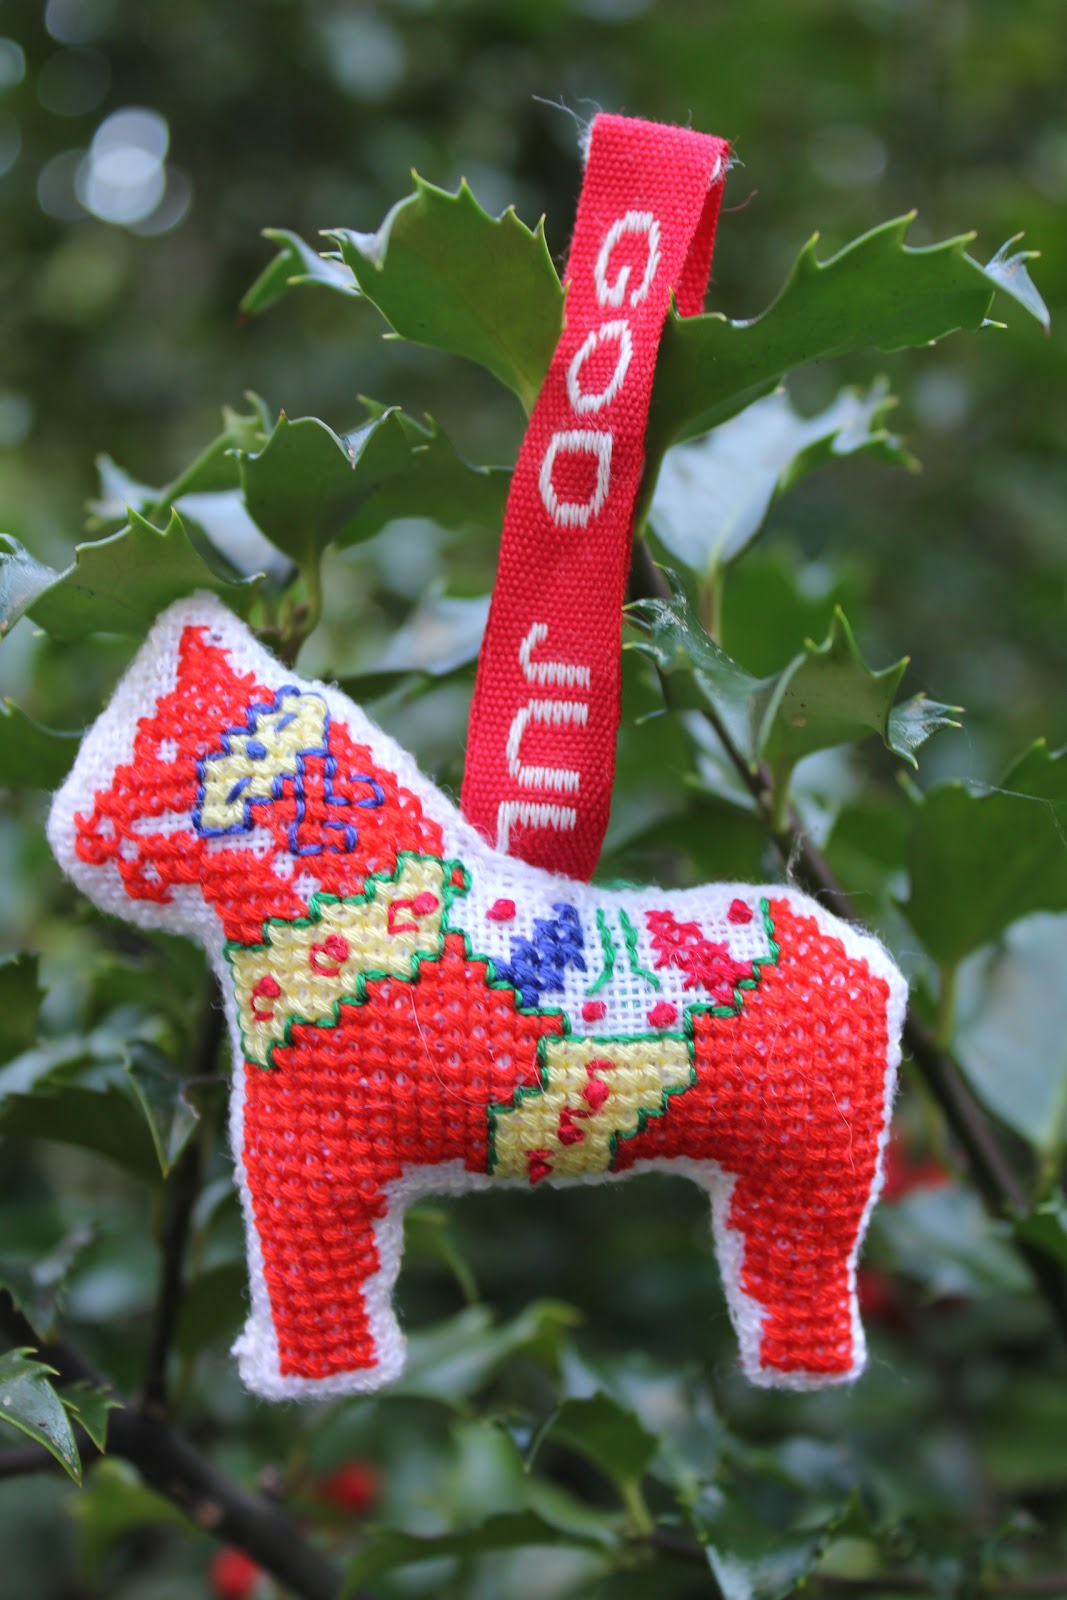 Rose christmas ornament - It Hardly Seems Possible That We Could Already Be Stitching The Annual Christmas Ornament But That Was The Program For November The Ornament Was Dalahorse